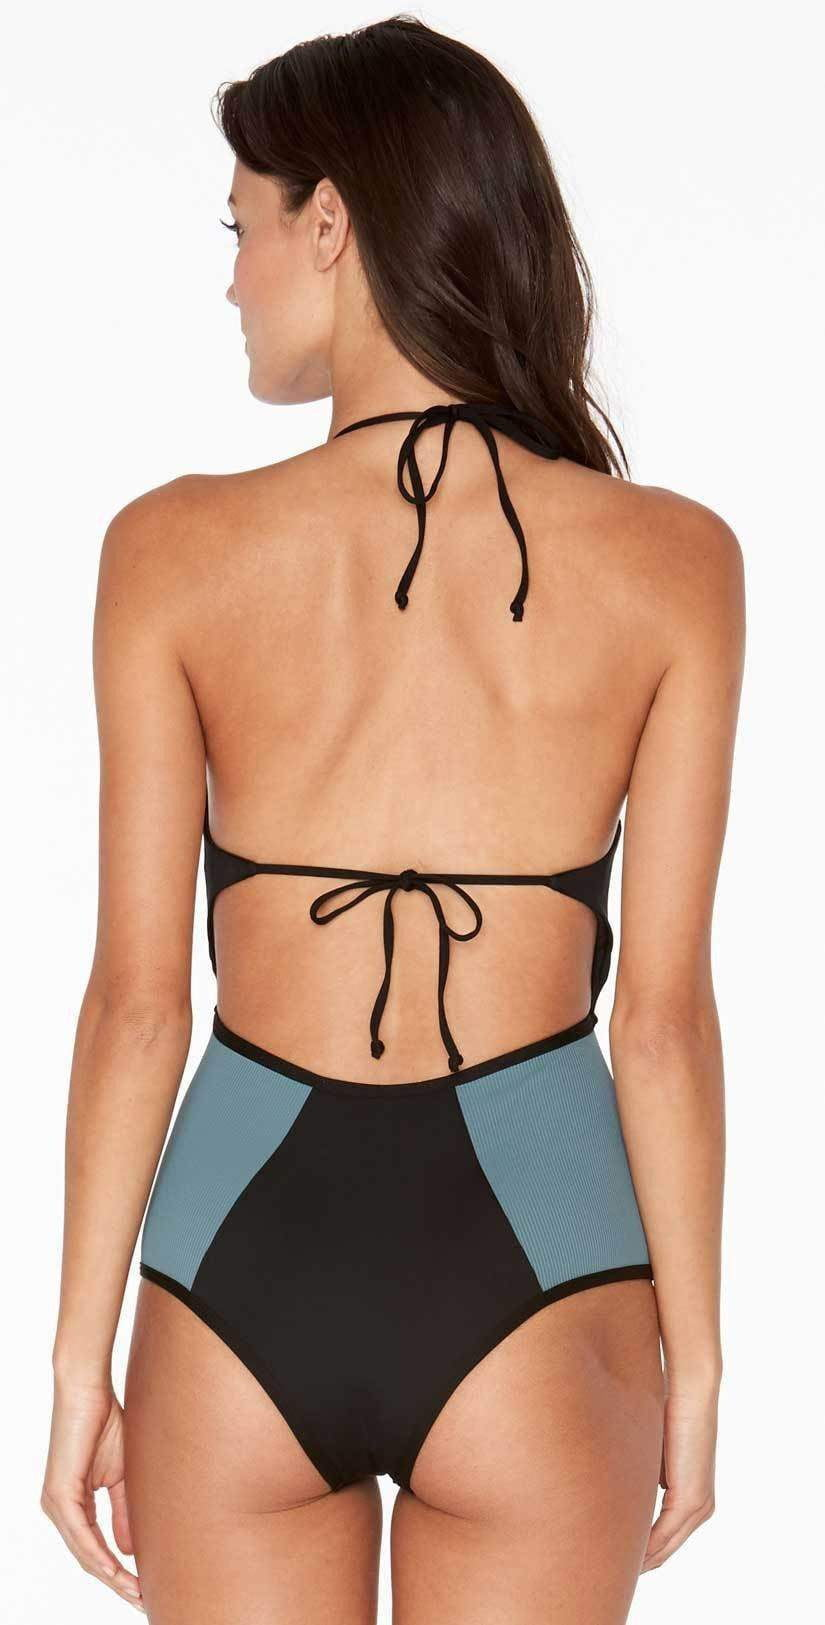 L Space Fireside One Piece in Black RHFIM18-BLK  back view